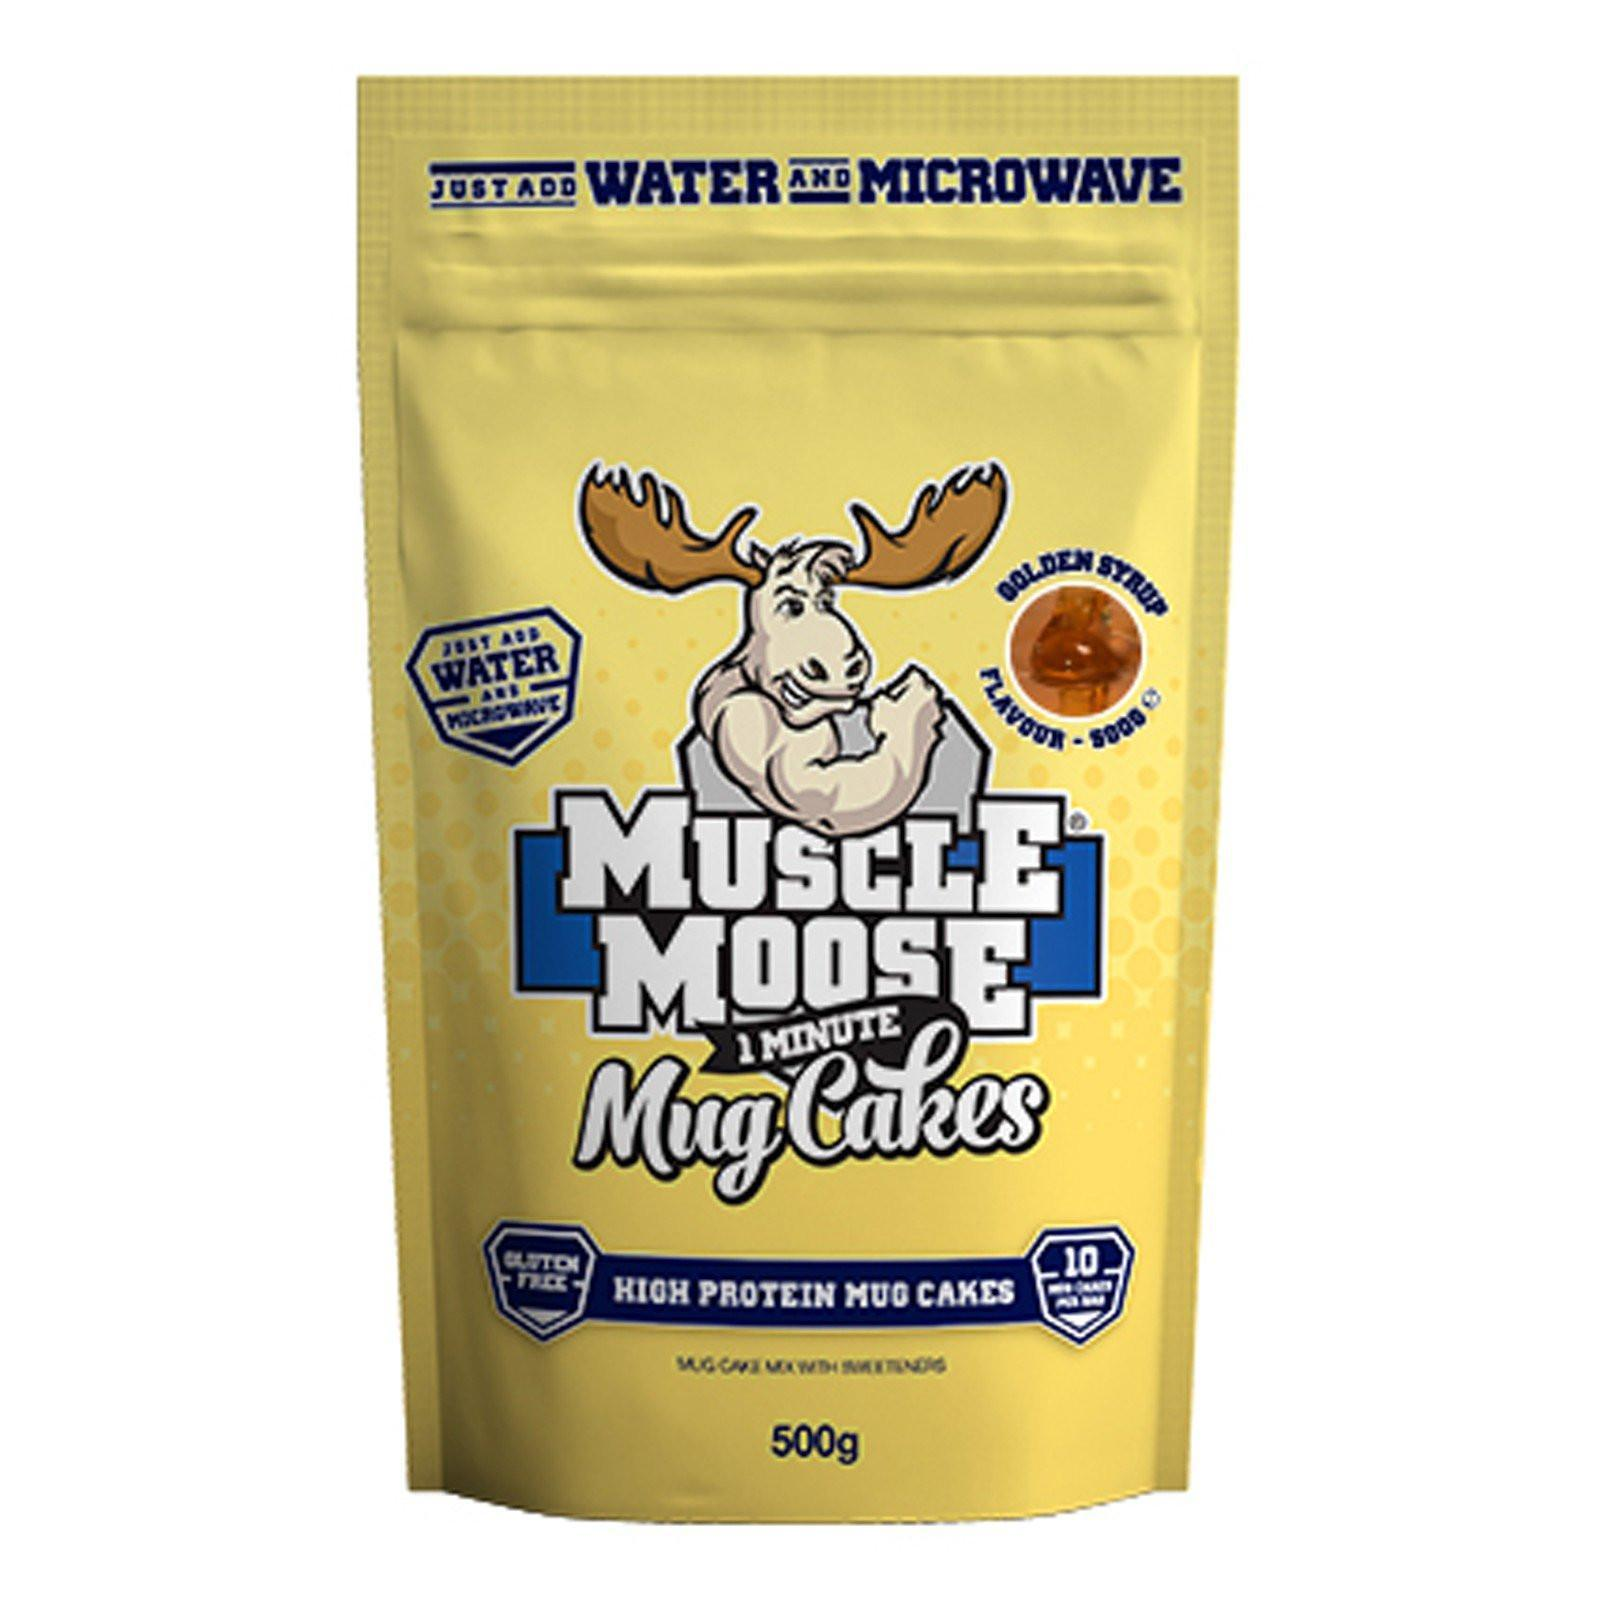 Muscle Mousse 1 Minute Mug Cakes, Golden Syrup